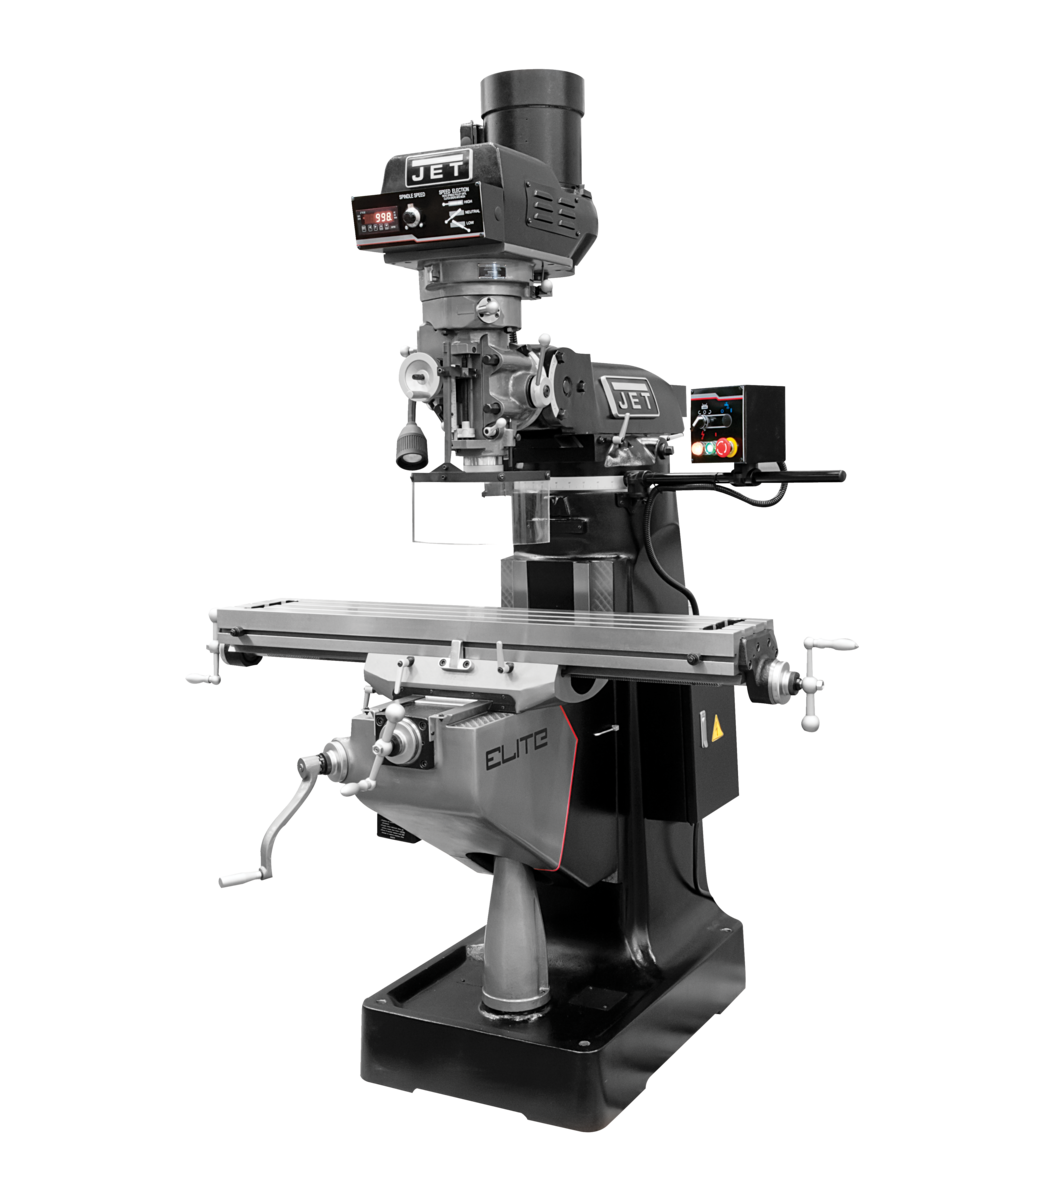 EVS-949 Mill with 3-Axis ACU-RITE 303  (Knee) DRO and X-Axis JET Powerfeed and USA Made Air Draw Bar